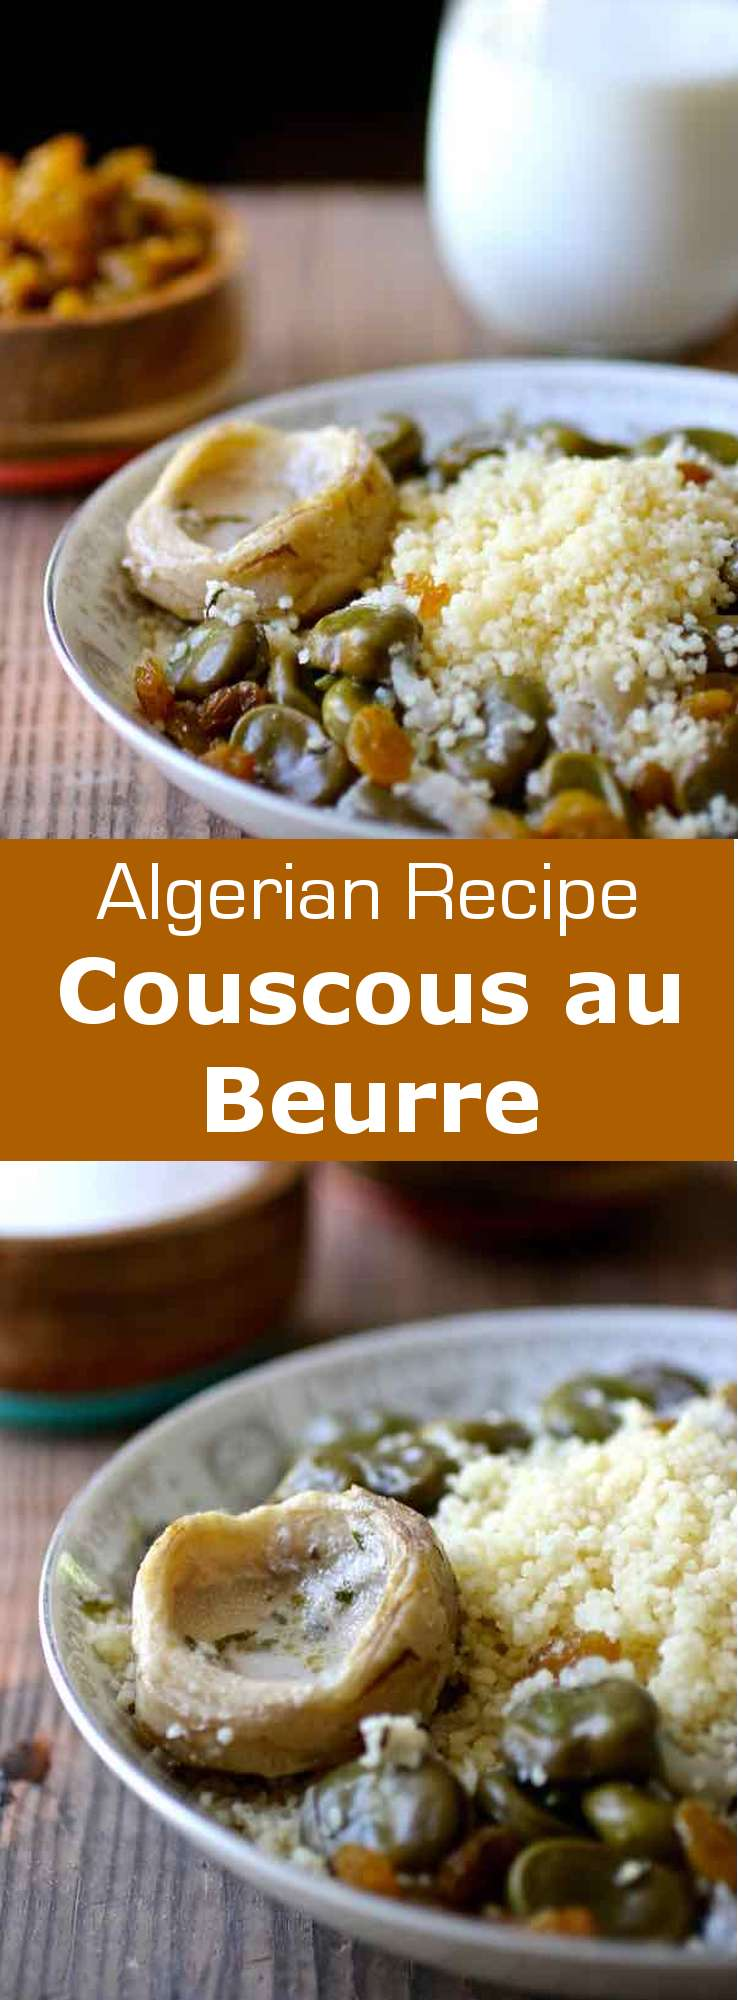 Couscous au beurre is a traditional Algerian recipe that consists of couscous with butter and vegetables, and typically served with fermented milk. #algeria #196flavors